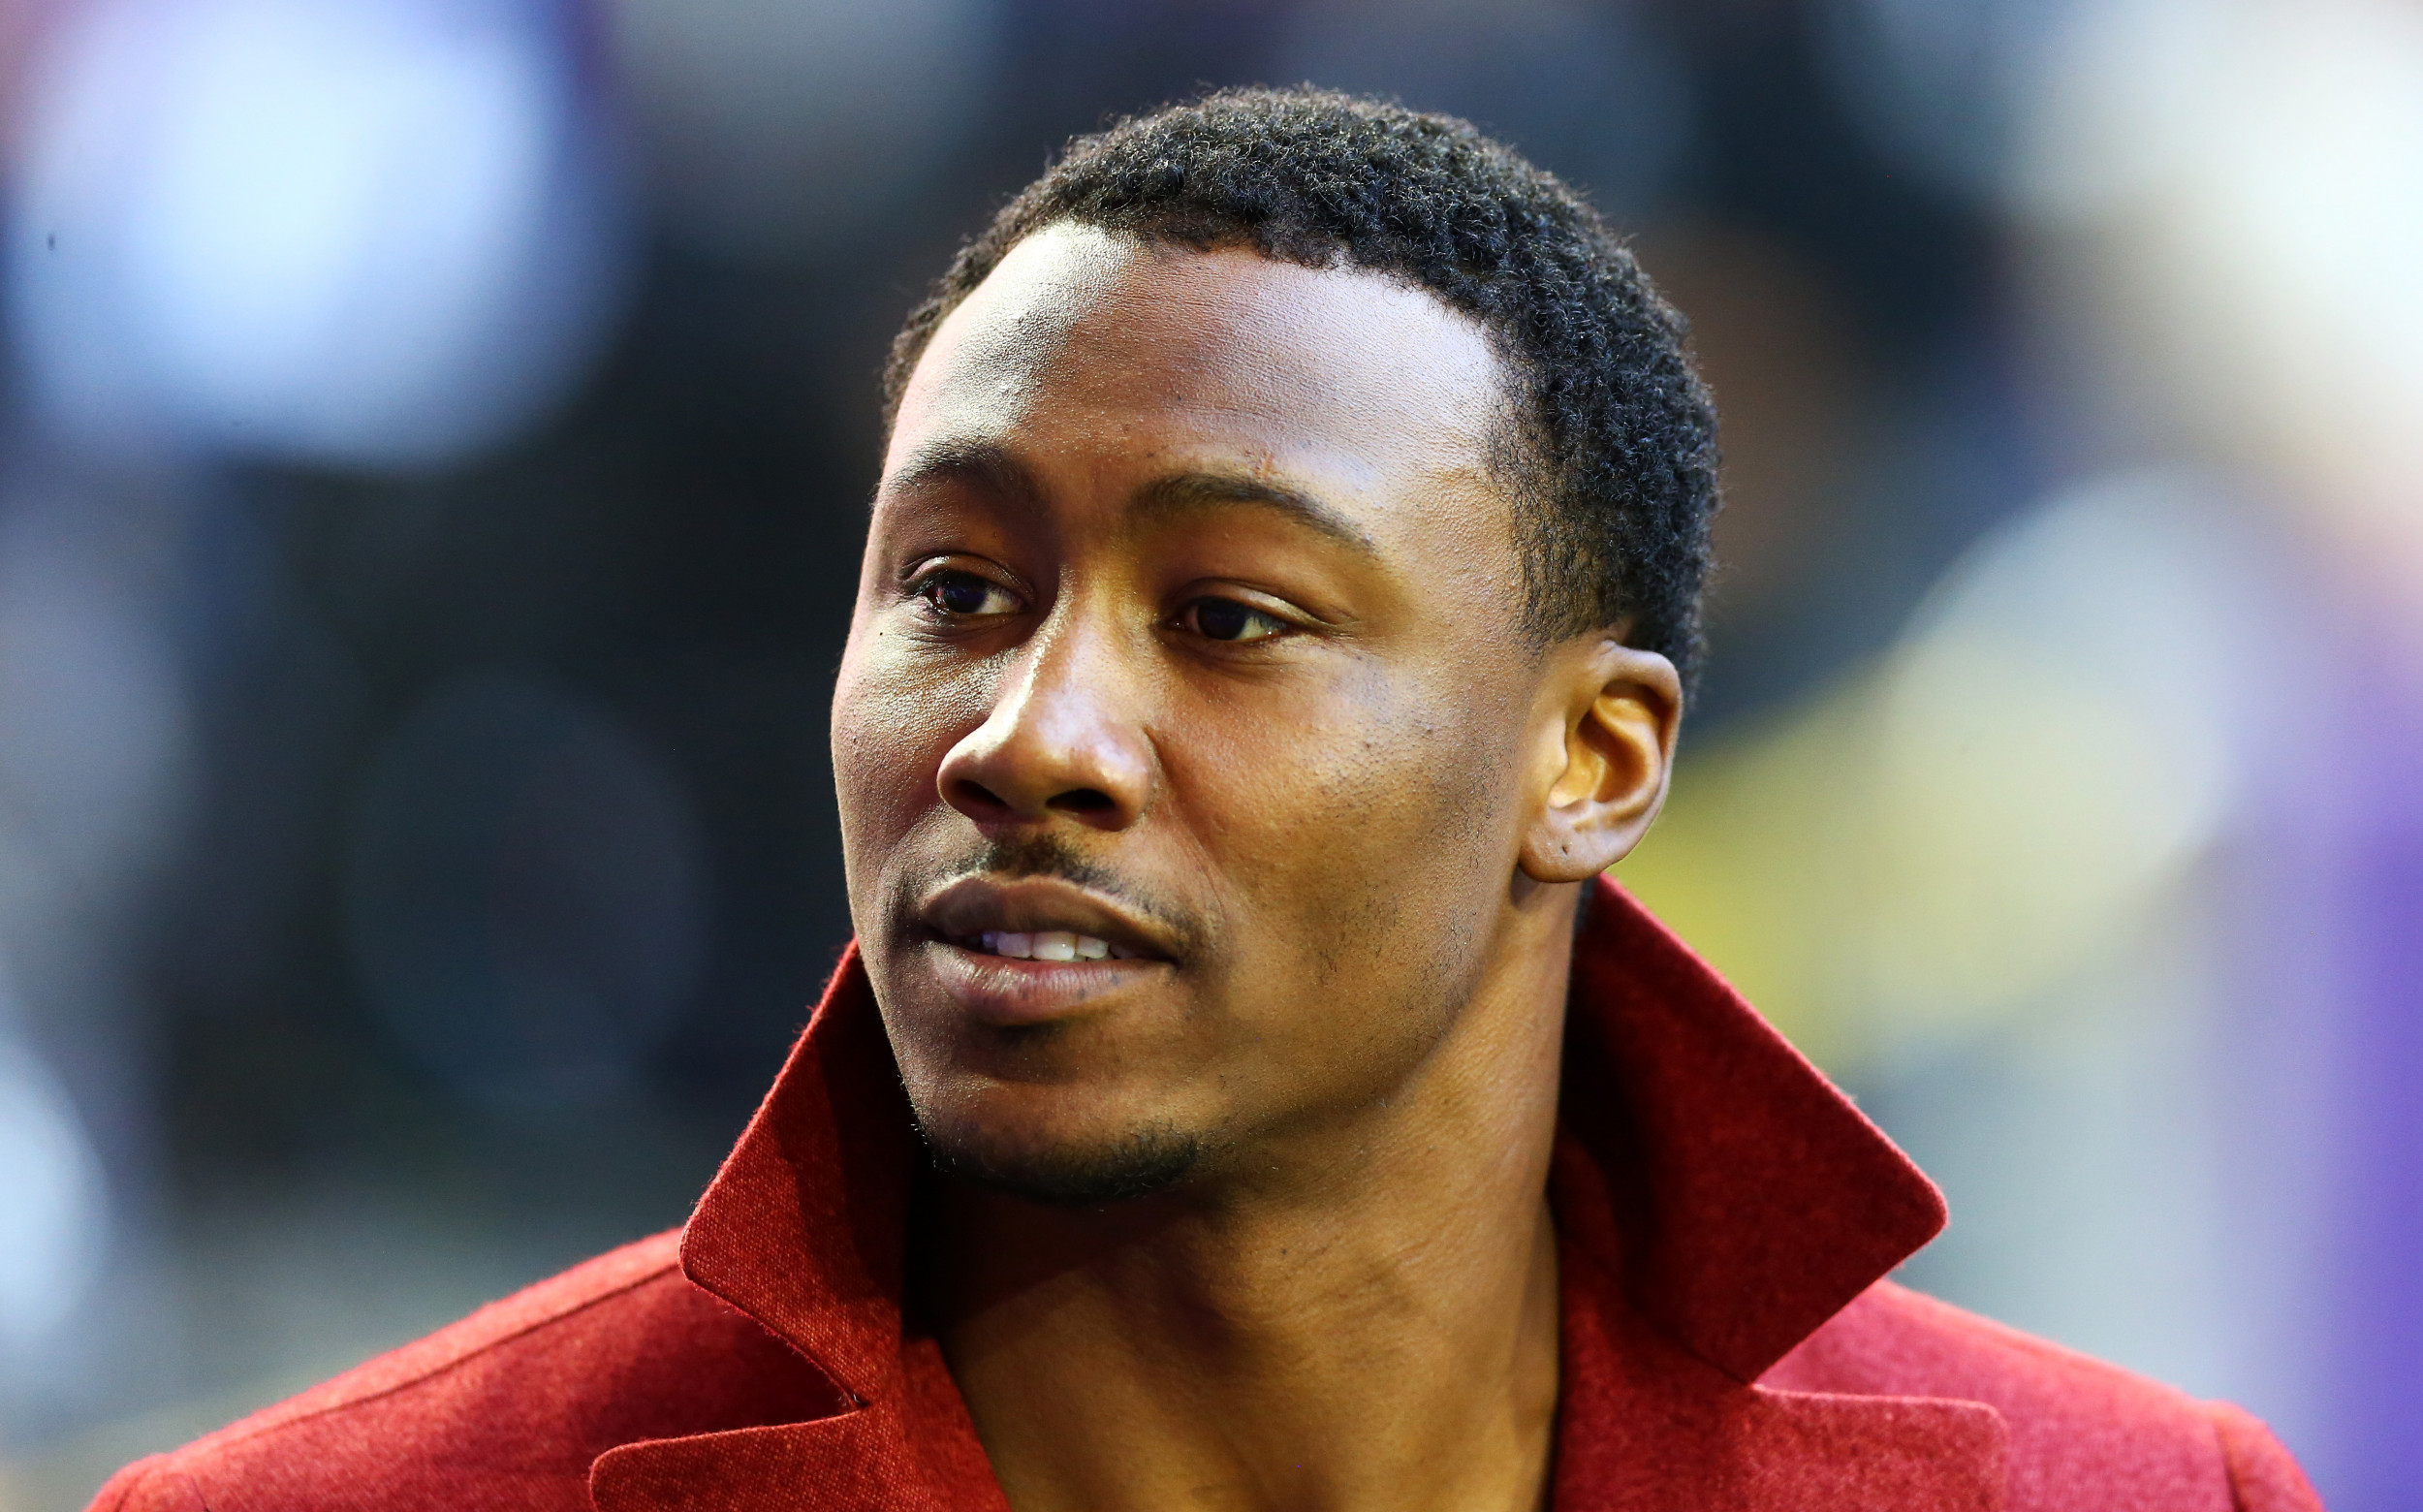 Ex-NFL star Brandon Marshall shares video of security guard calling cops as he moves into new home